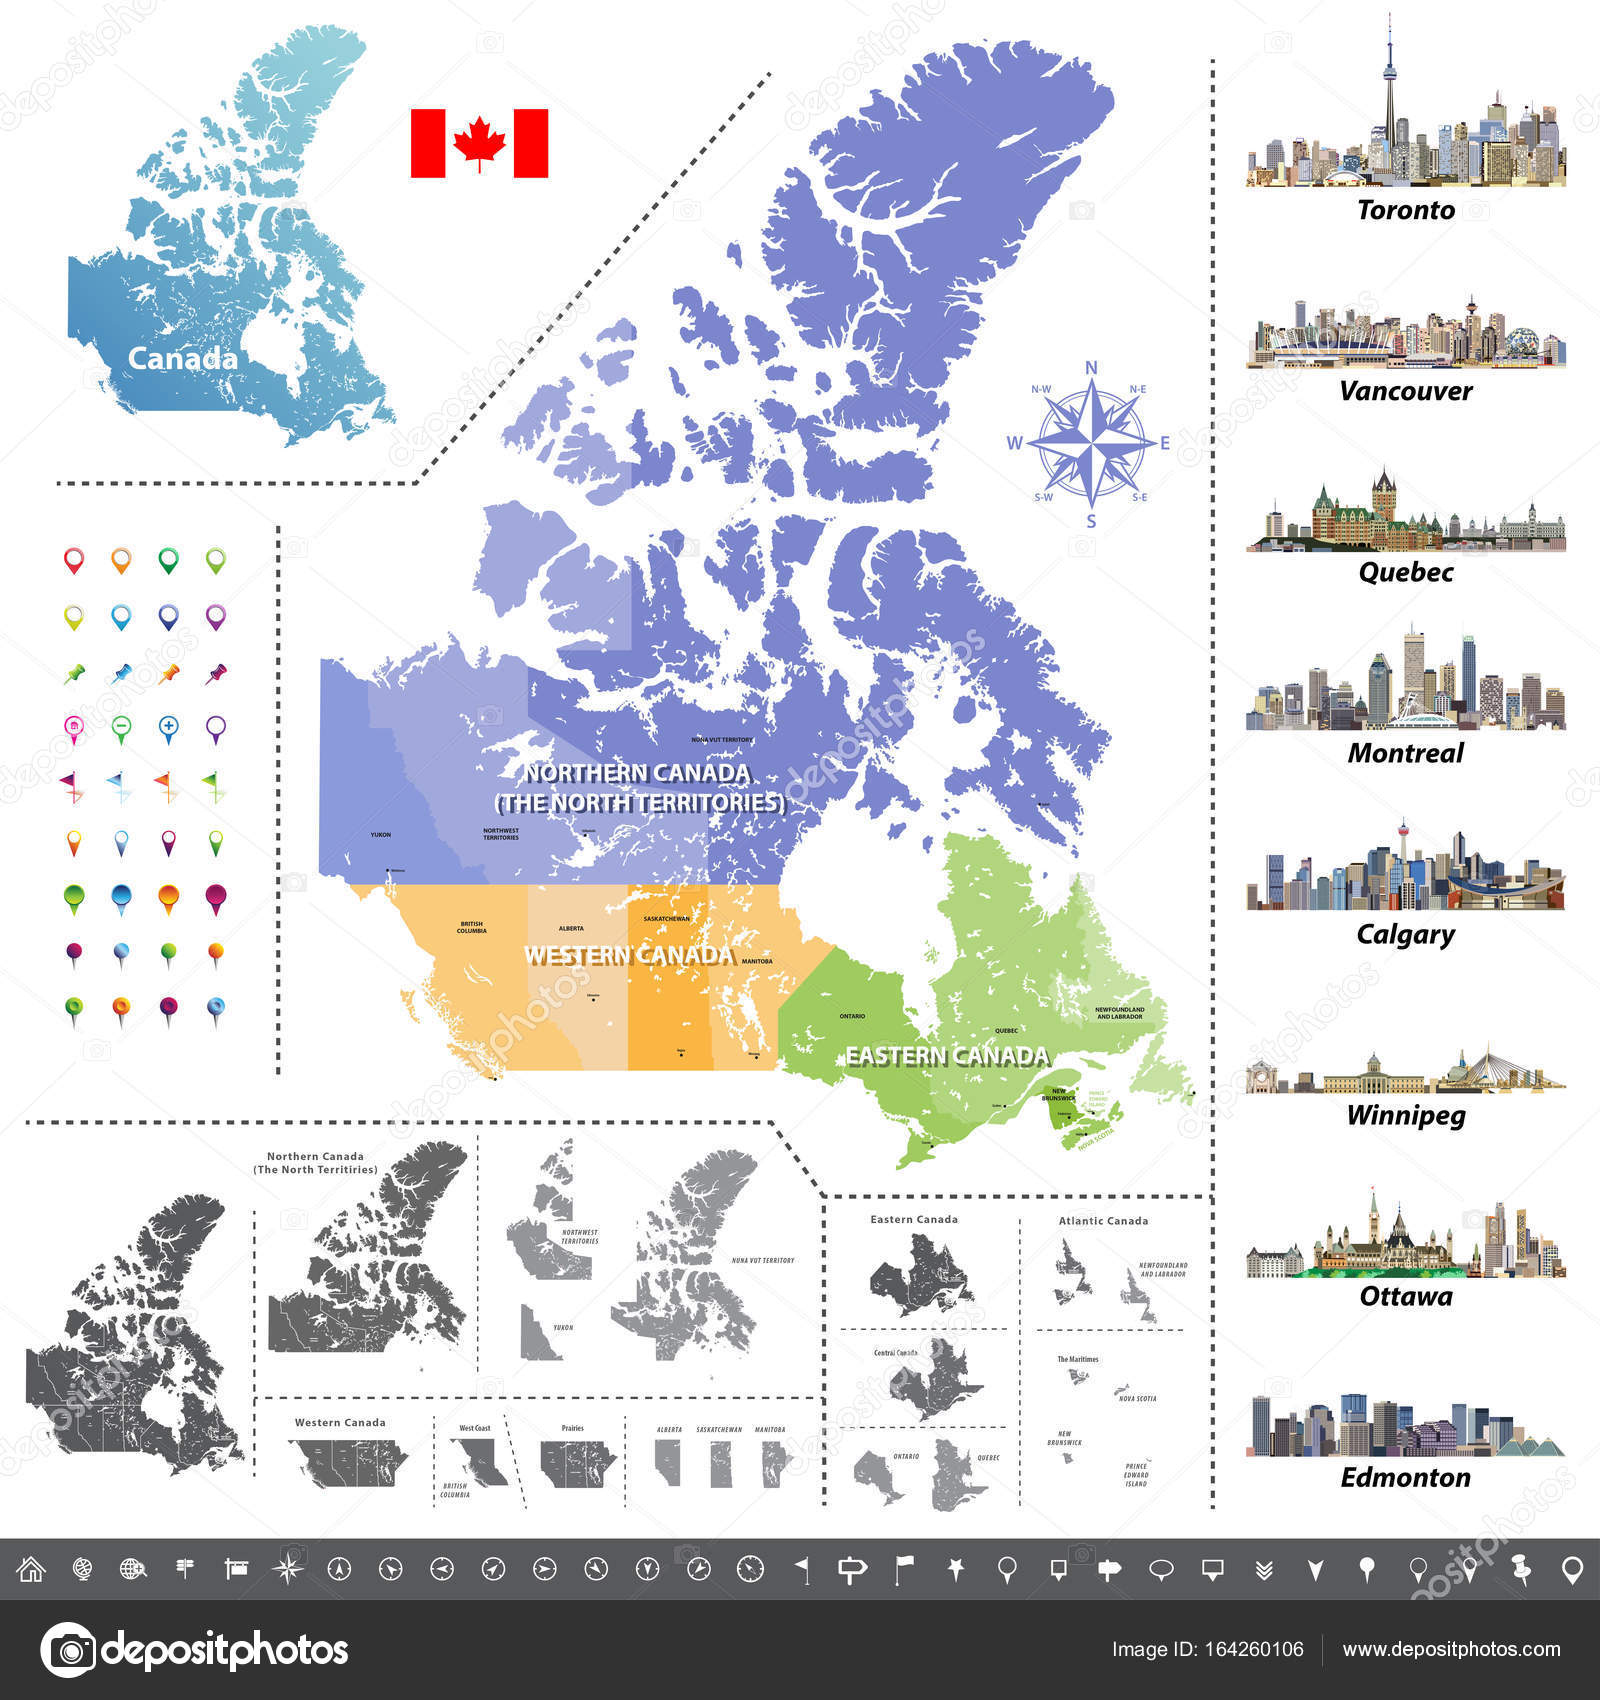 City Map Of Canada.Canadian Provinces And Territories Map Colored By Regions Map Flag